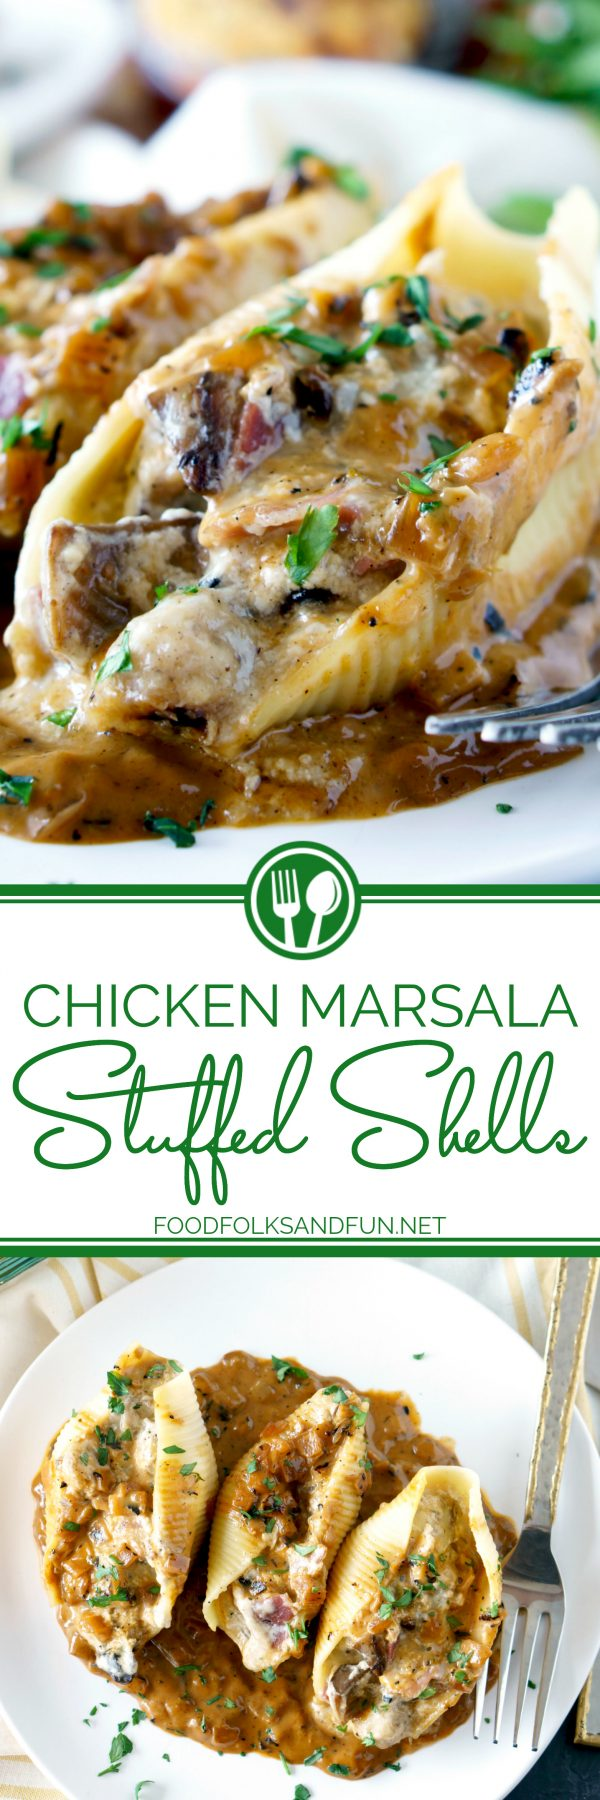 Delicious Chicken Marsala Stuffed Shells recipe.